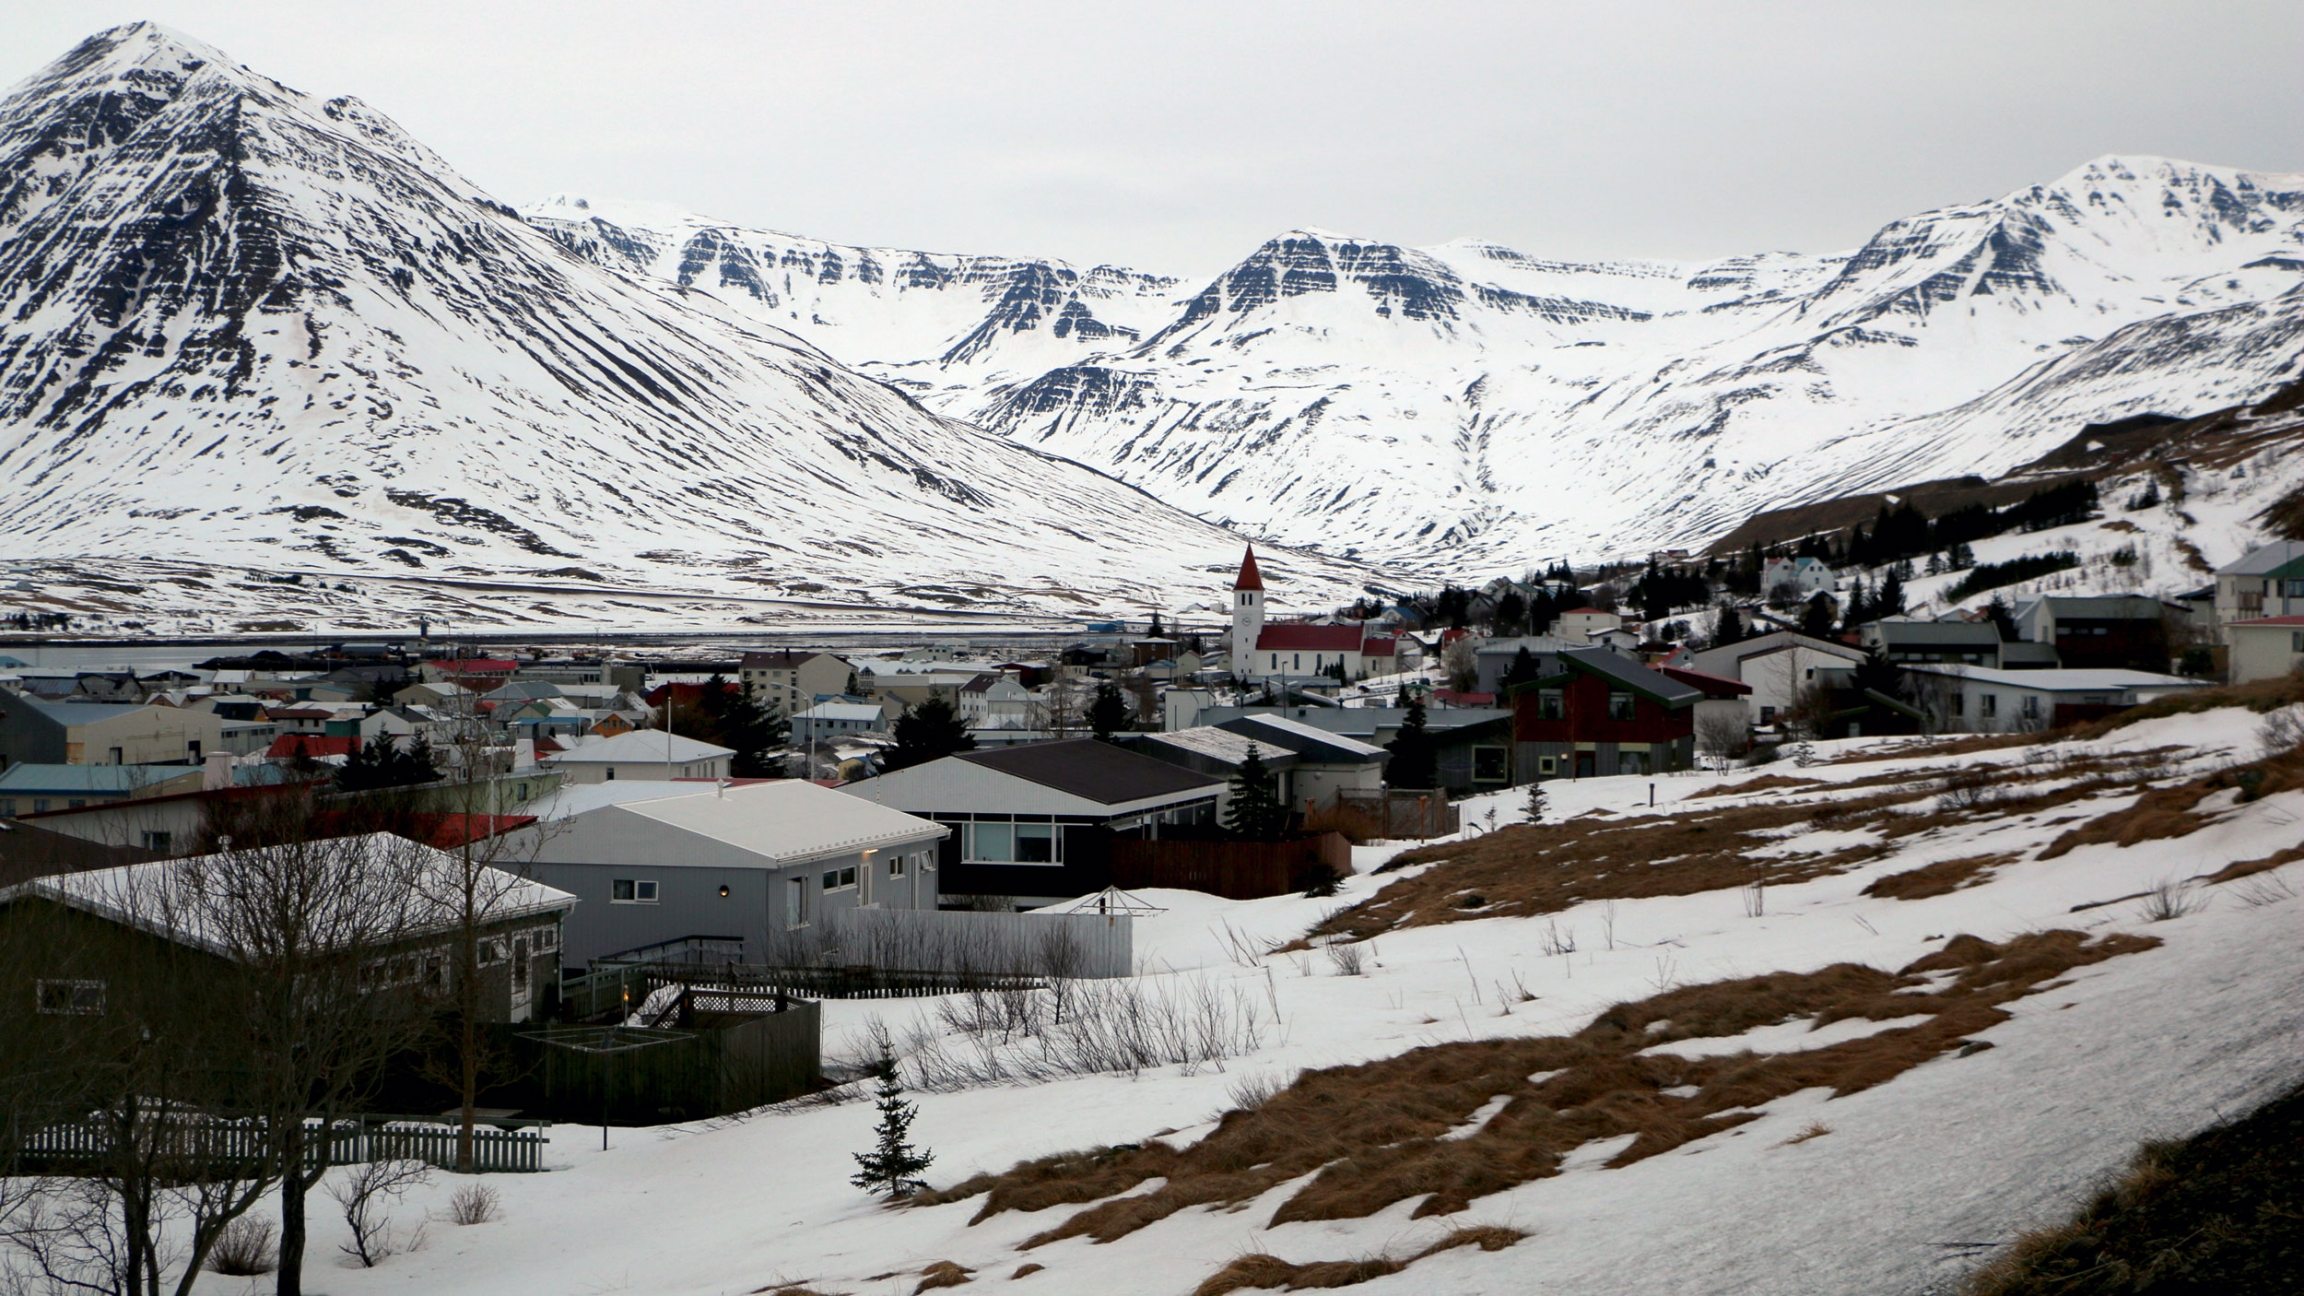 A town is blanketed in snow and flanked by a mountain